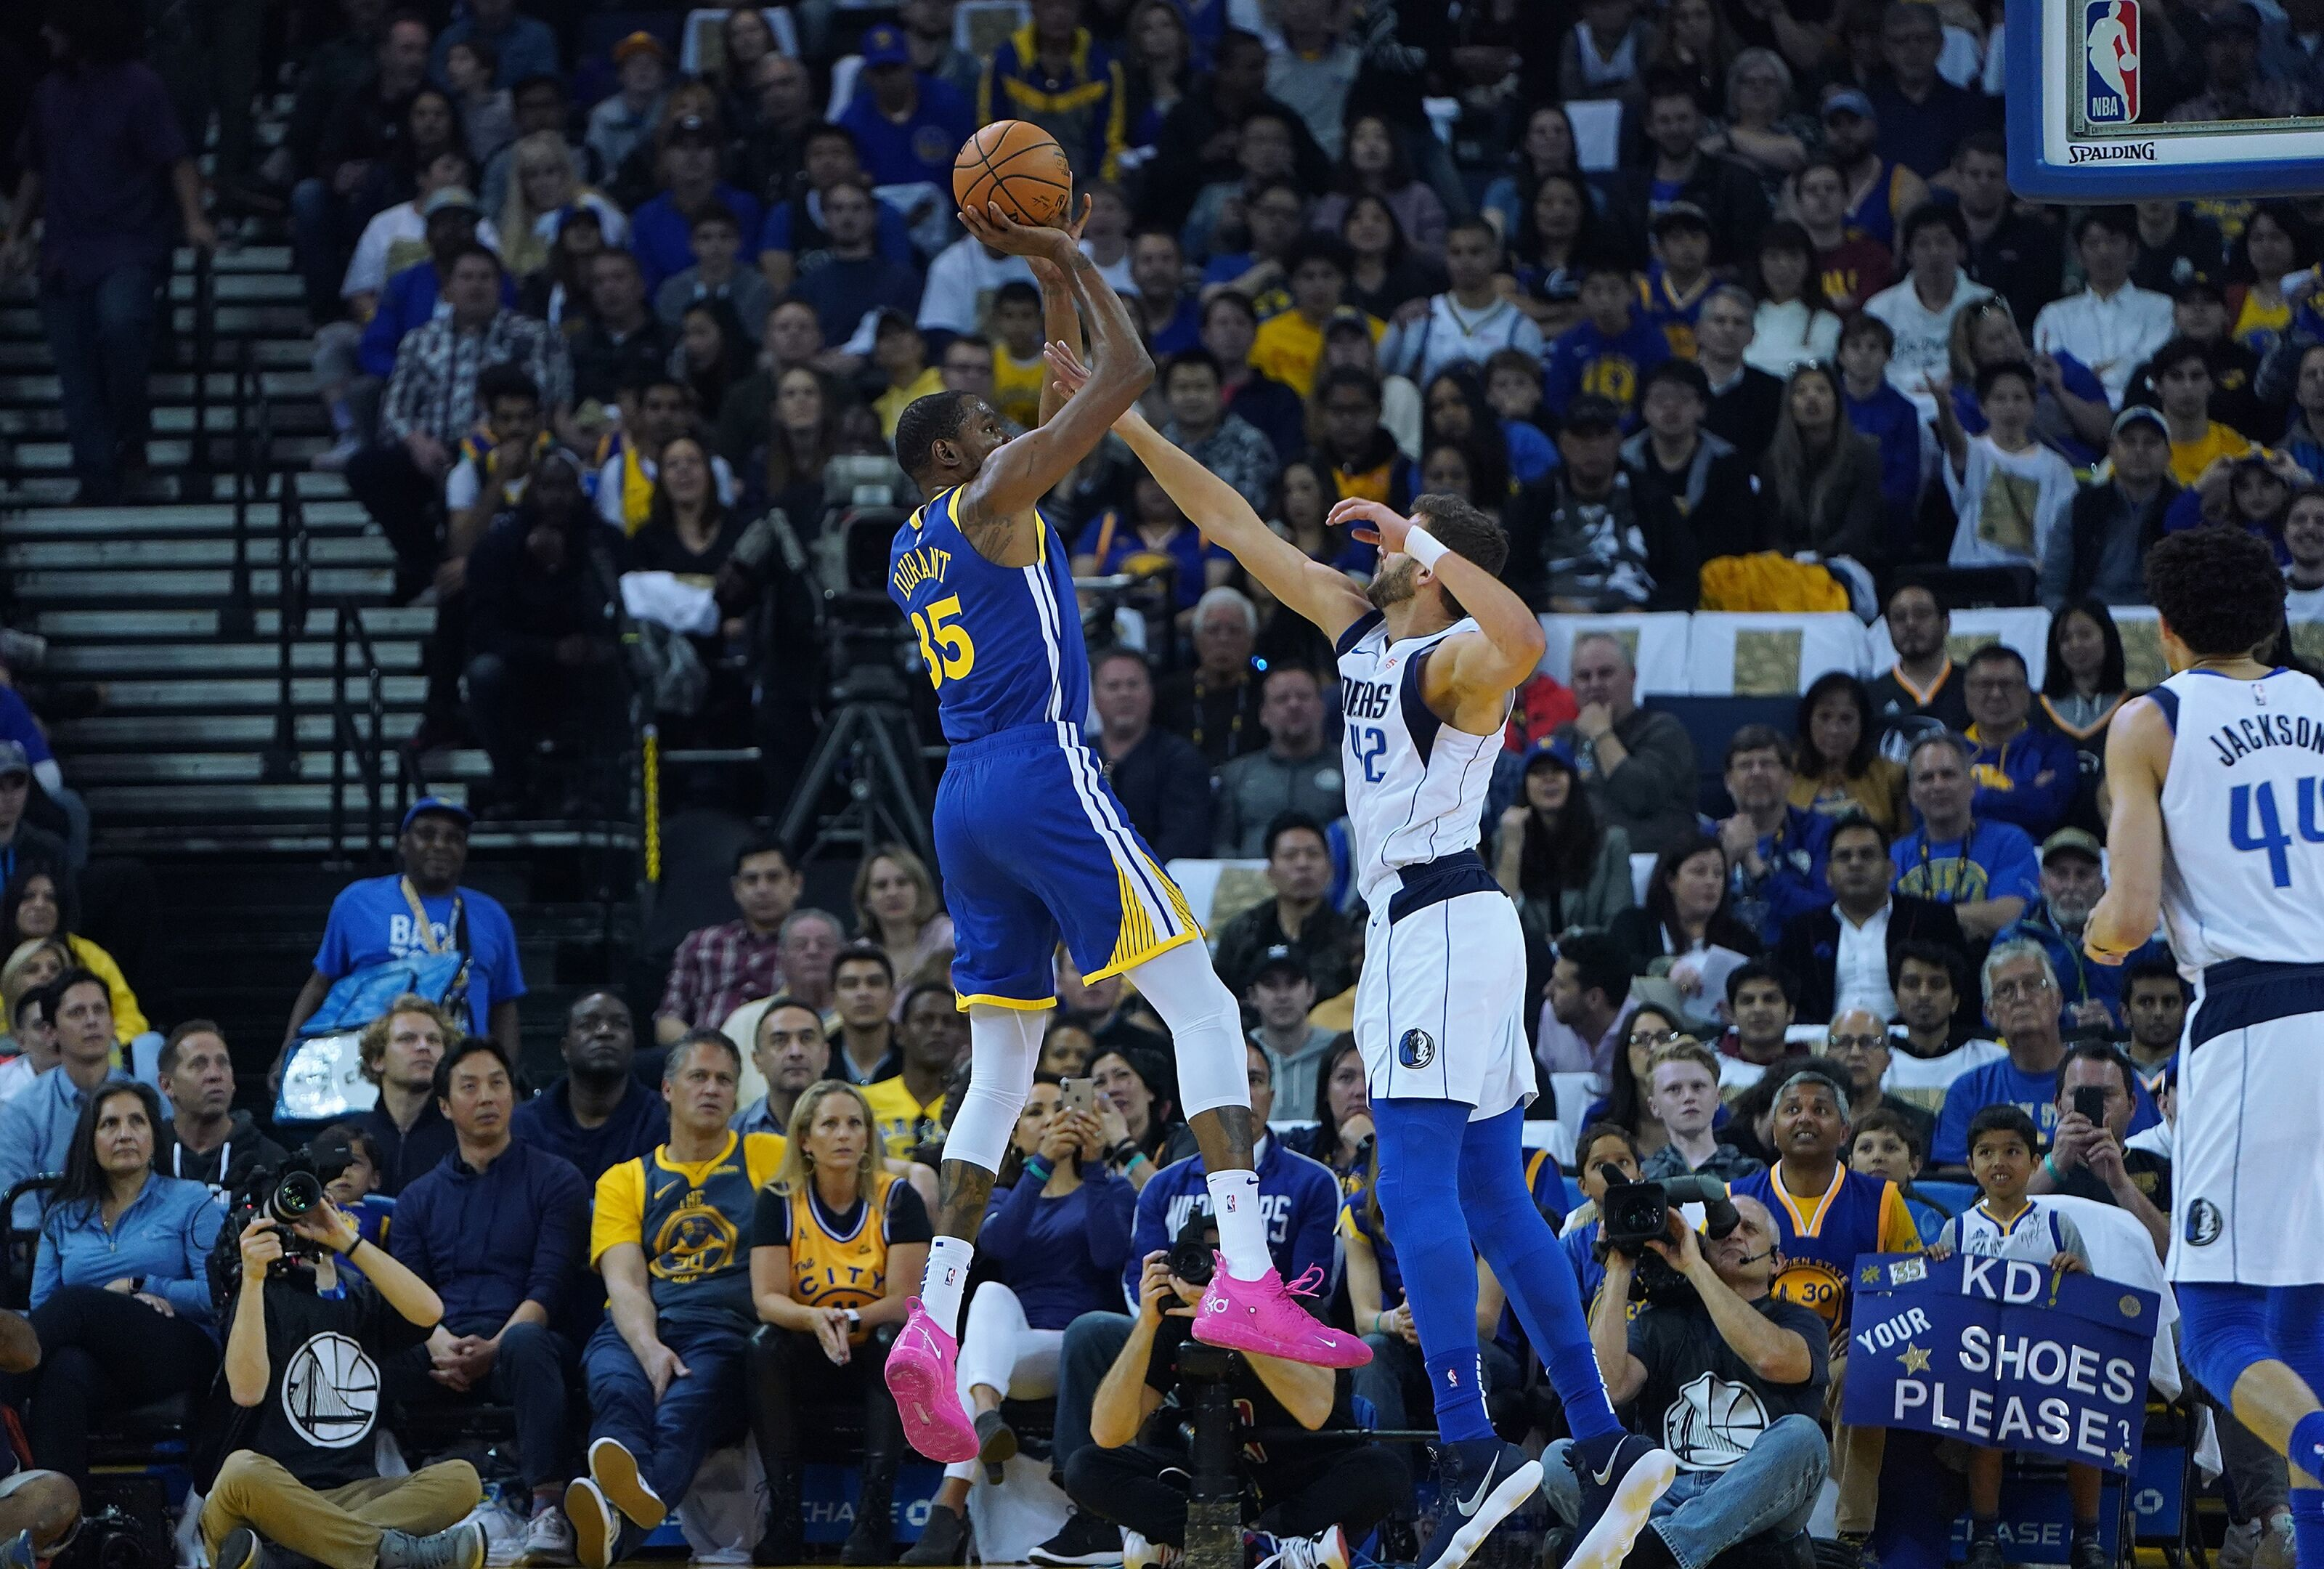 Golden State Warriors show one major weakness in 35-point loss to Mavericks